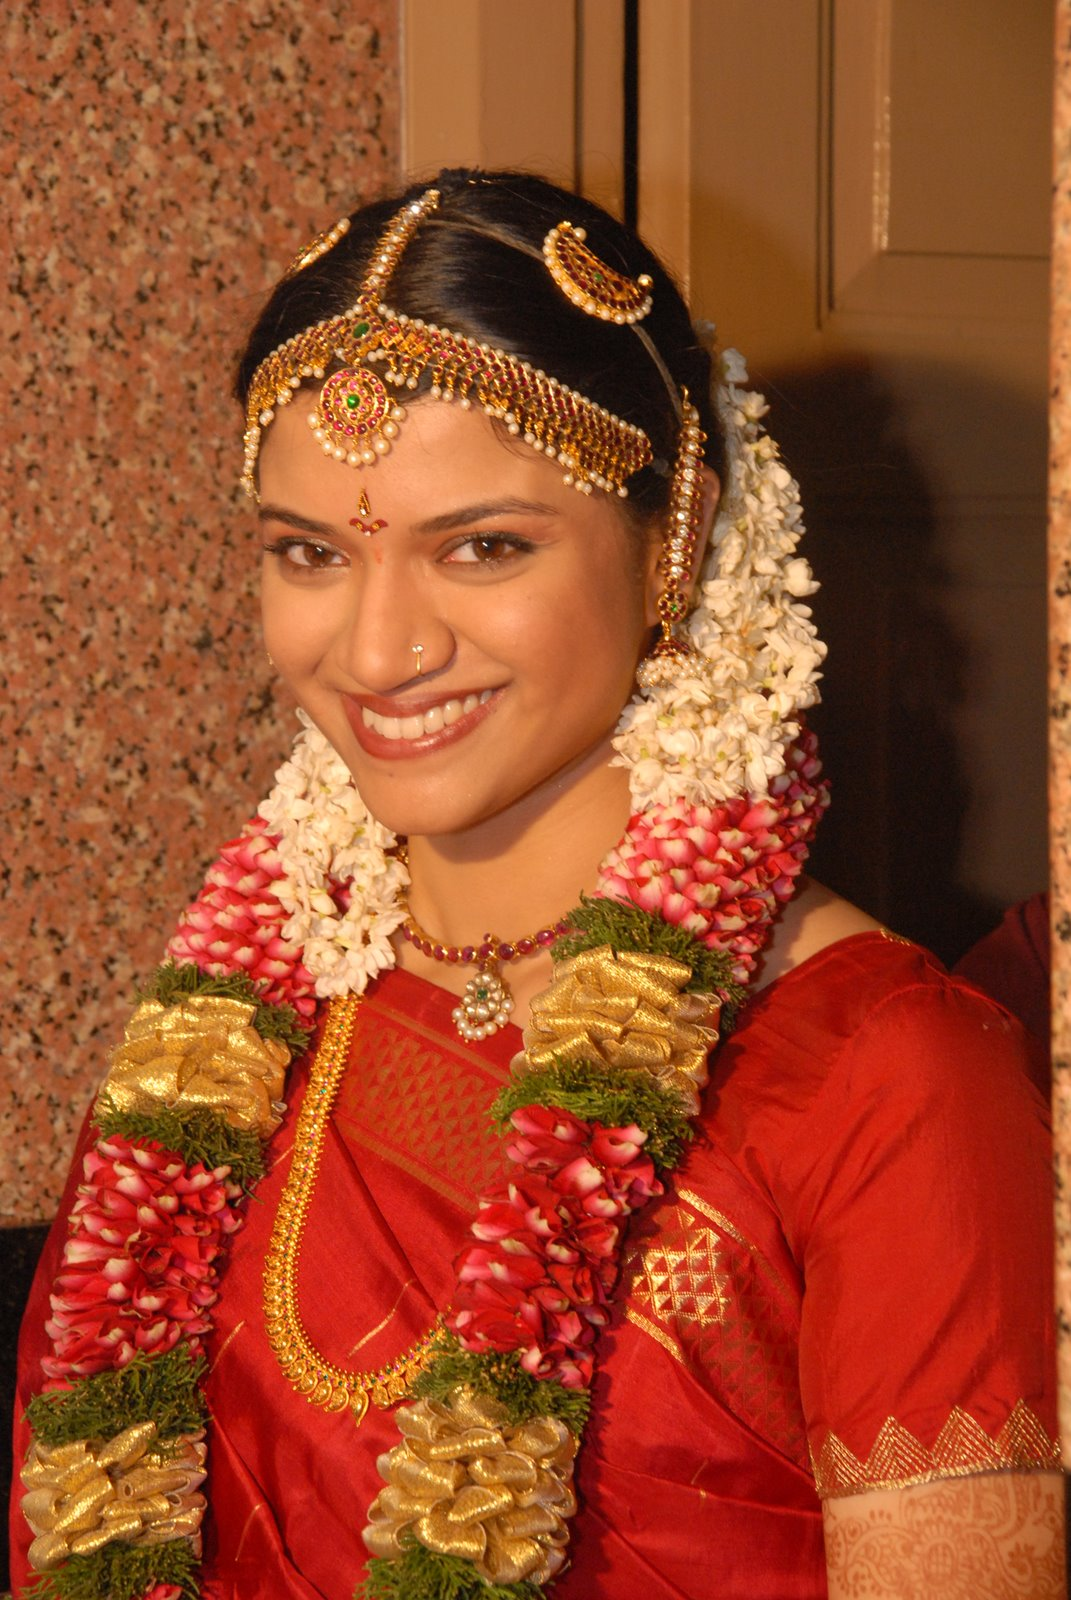 south indian wedding dress |Wedding Pictures